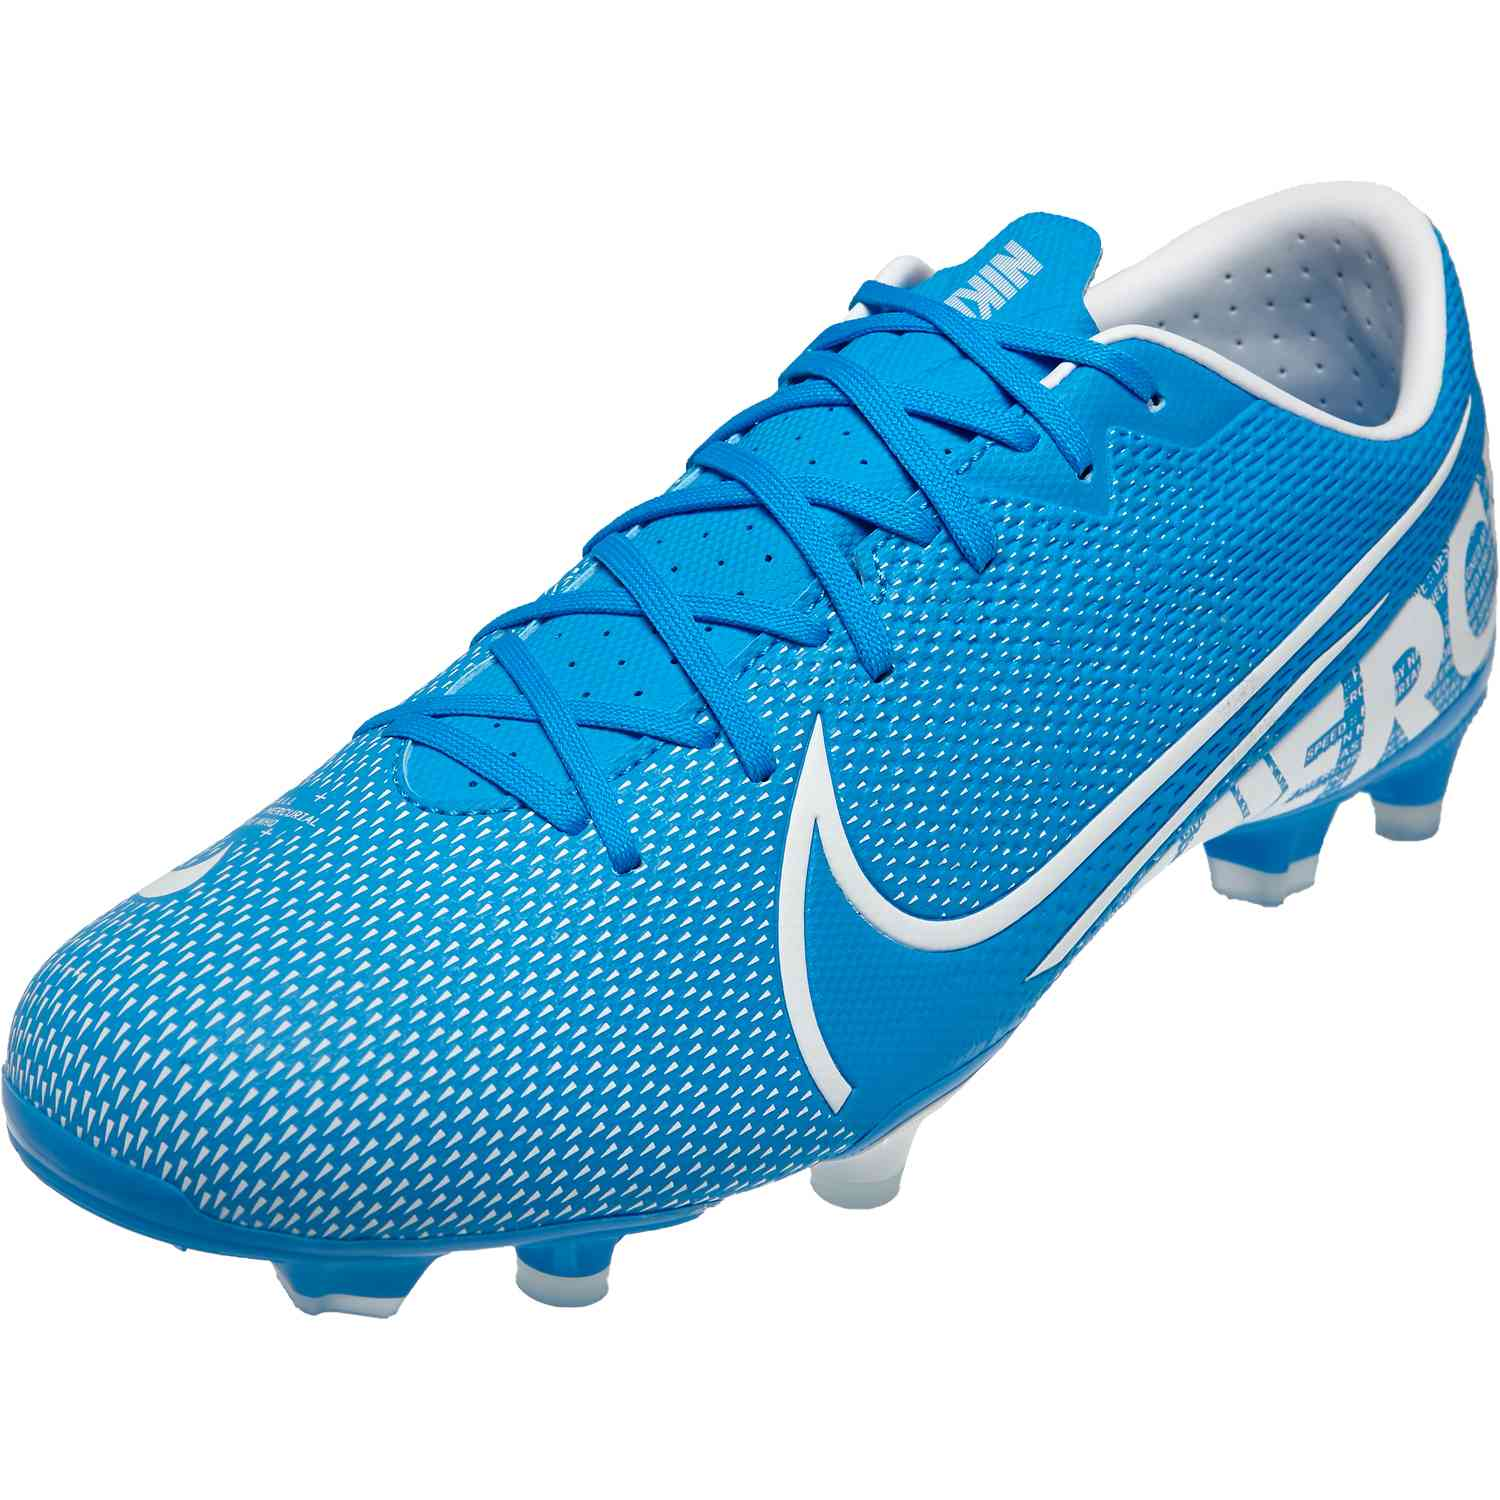 Nike Mercurial Vapor 13 Academy FG – New Lights